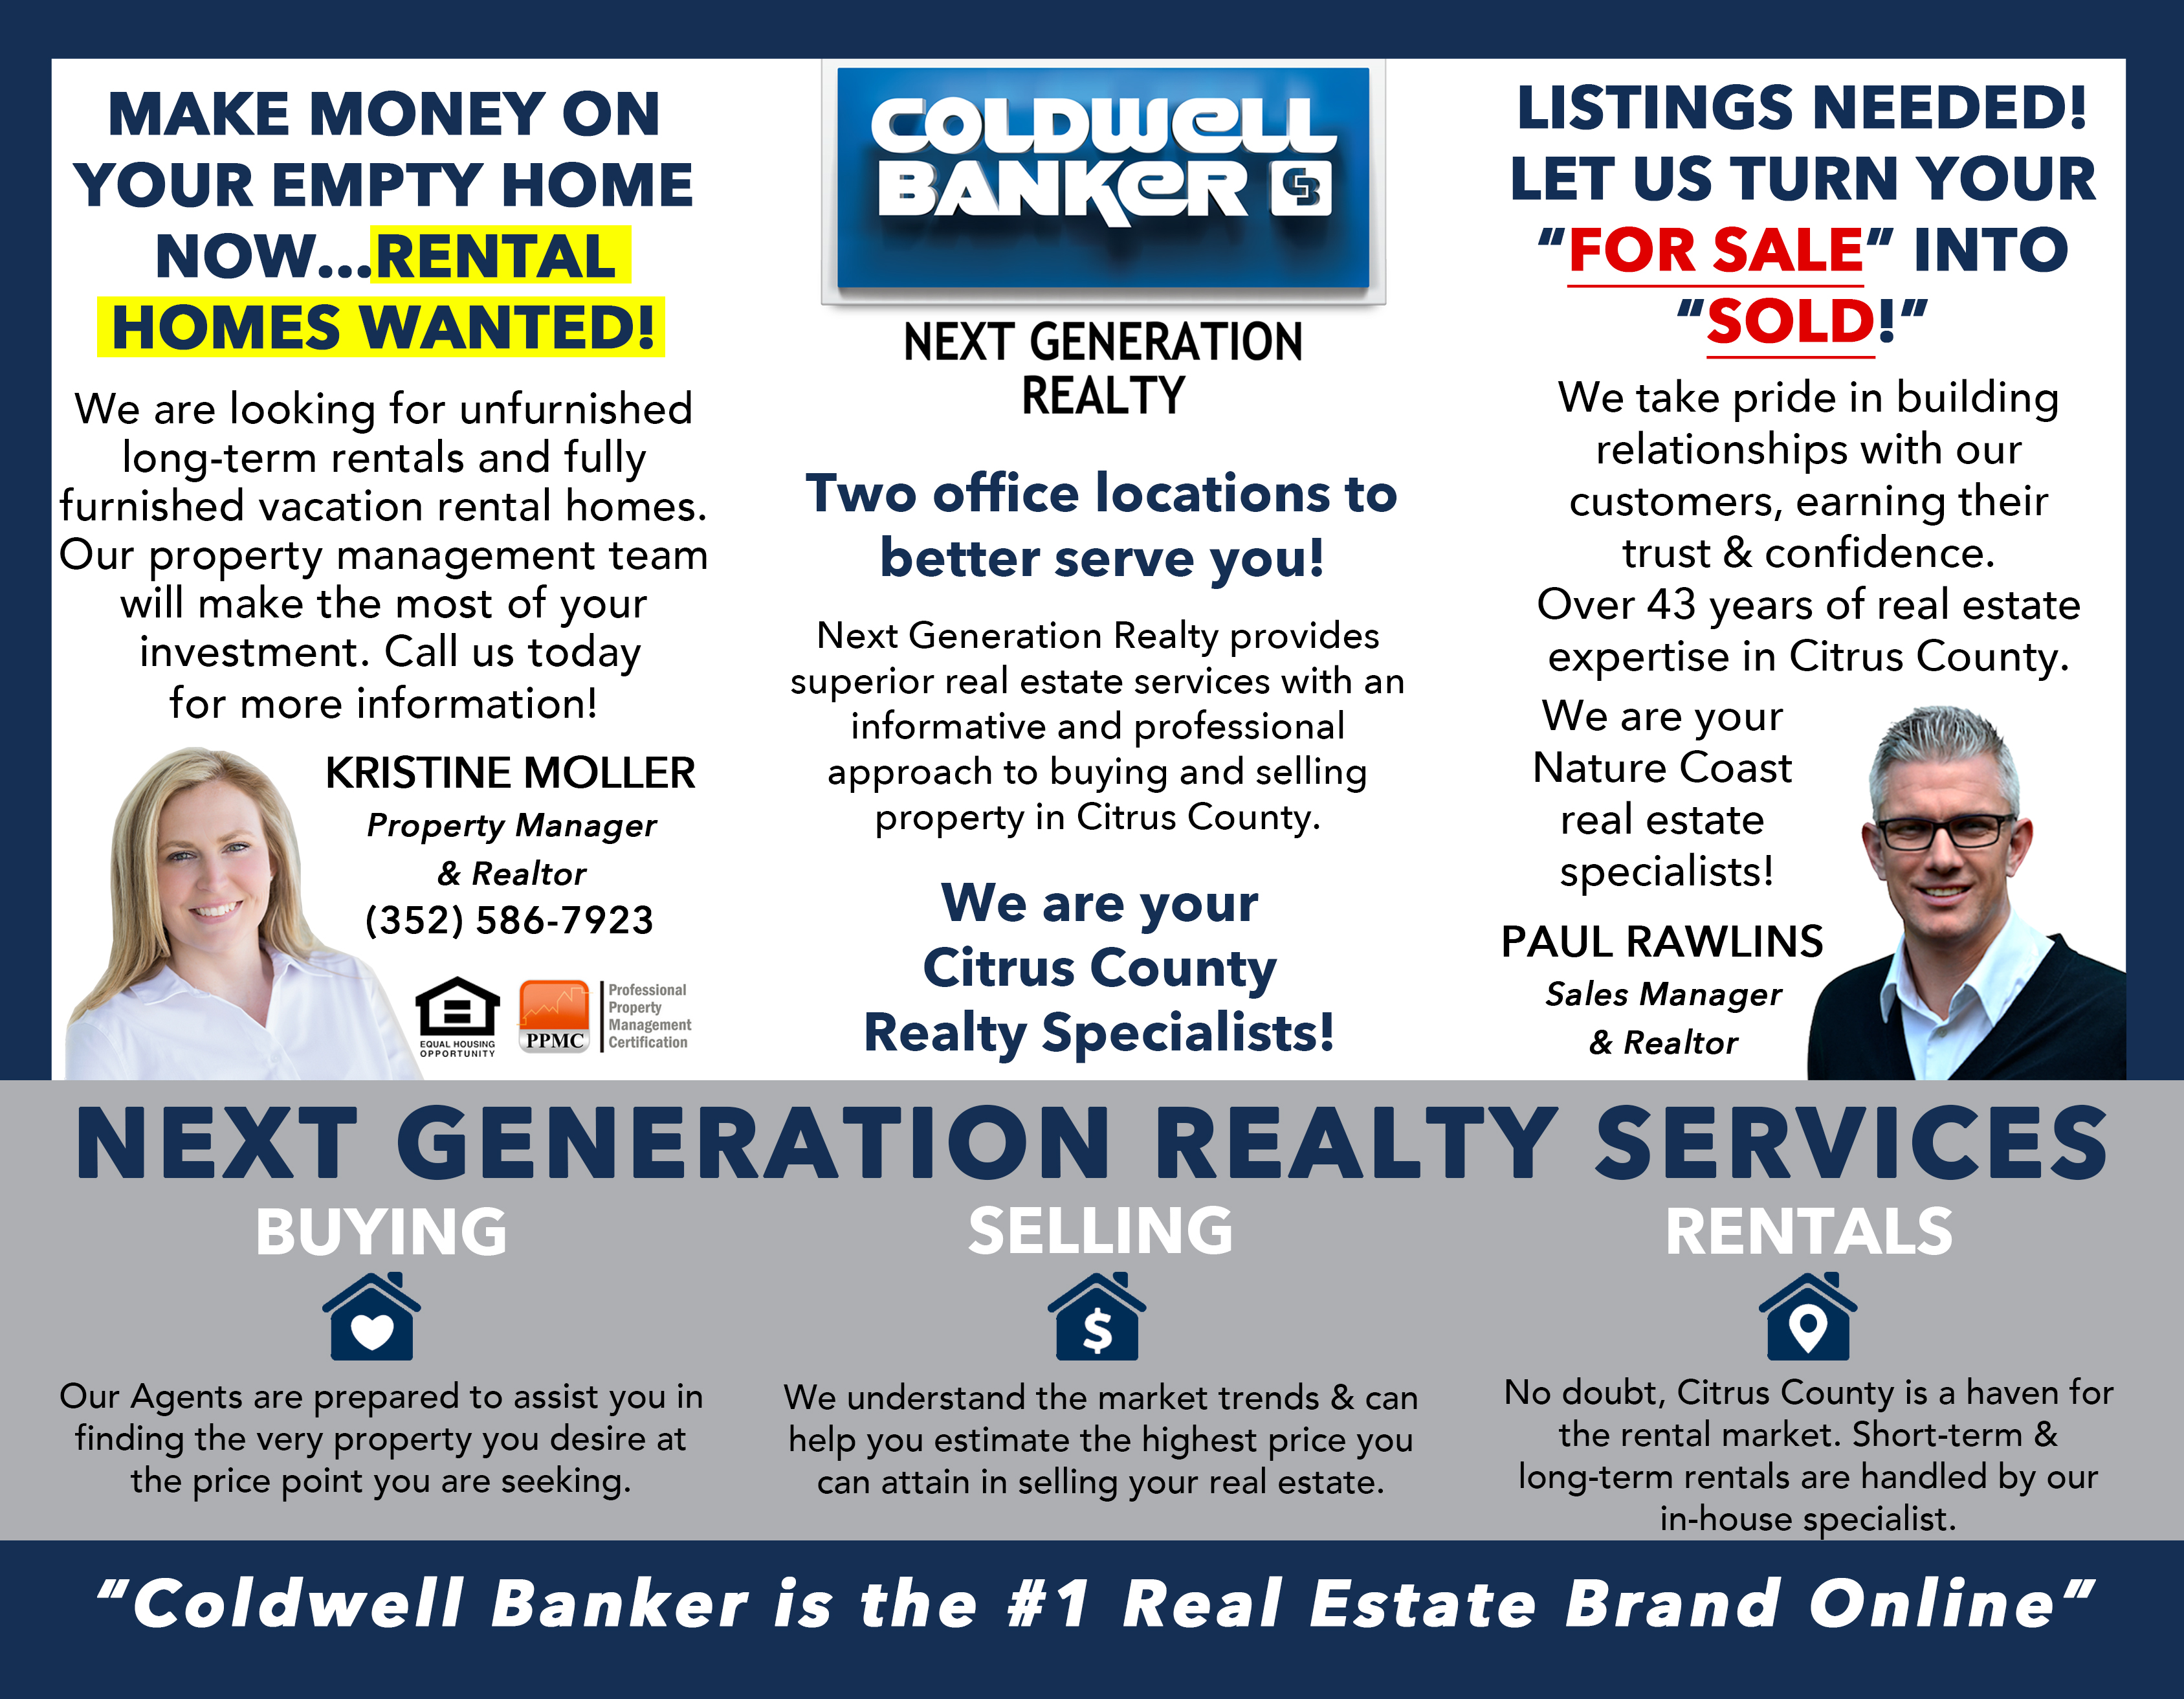 Citrus County Real Estate- Coldwell Banker Next Generation